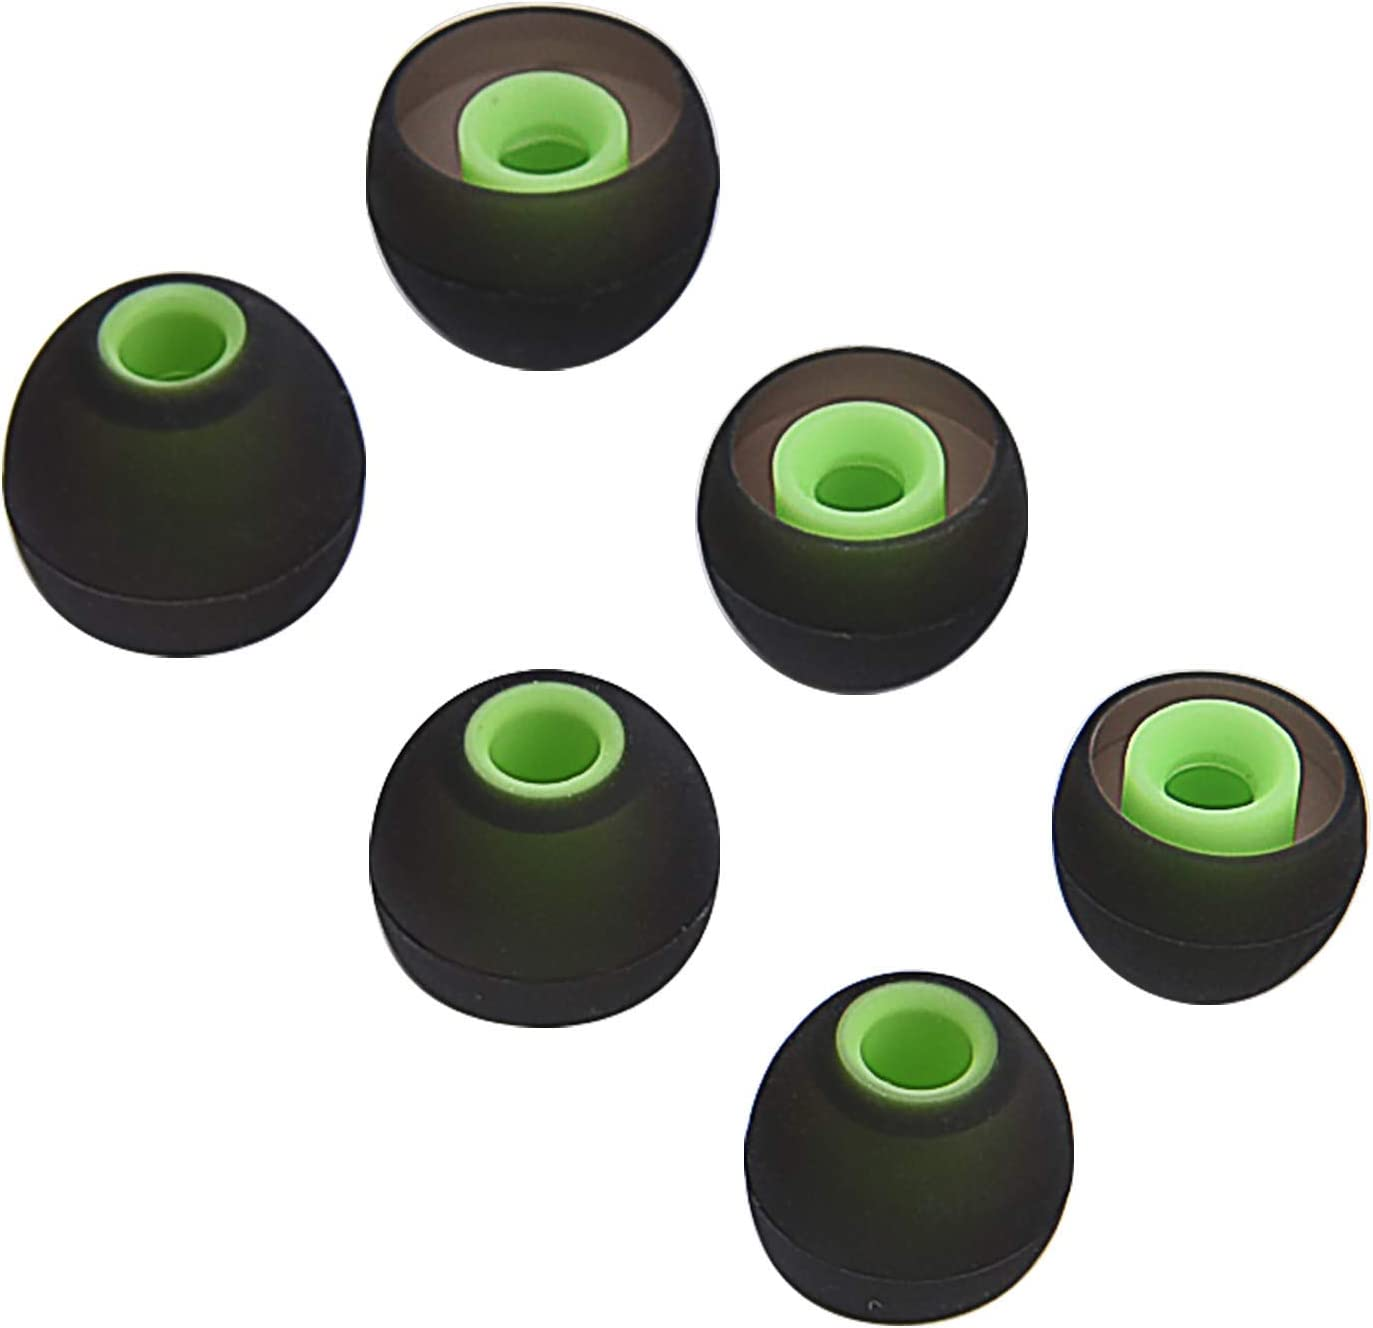 Replacement Noise Isolation Silicone Soft Ear Buds Earplug Tips for Senso TOZO Green, Small, Medium, Large - 5 Pair Hussar Sport in Ear Headphones Wireless Earphones Zeus Otium Sony